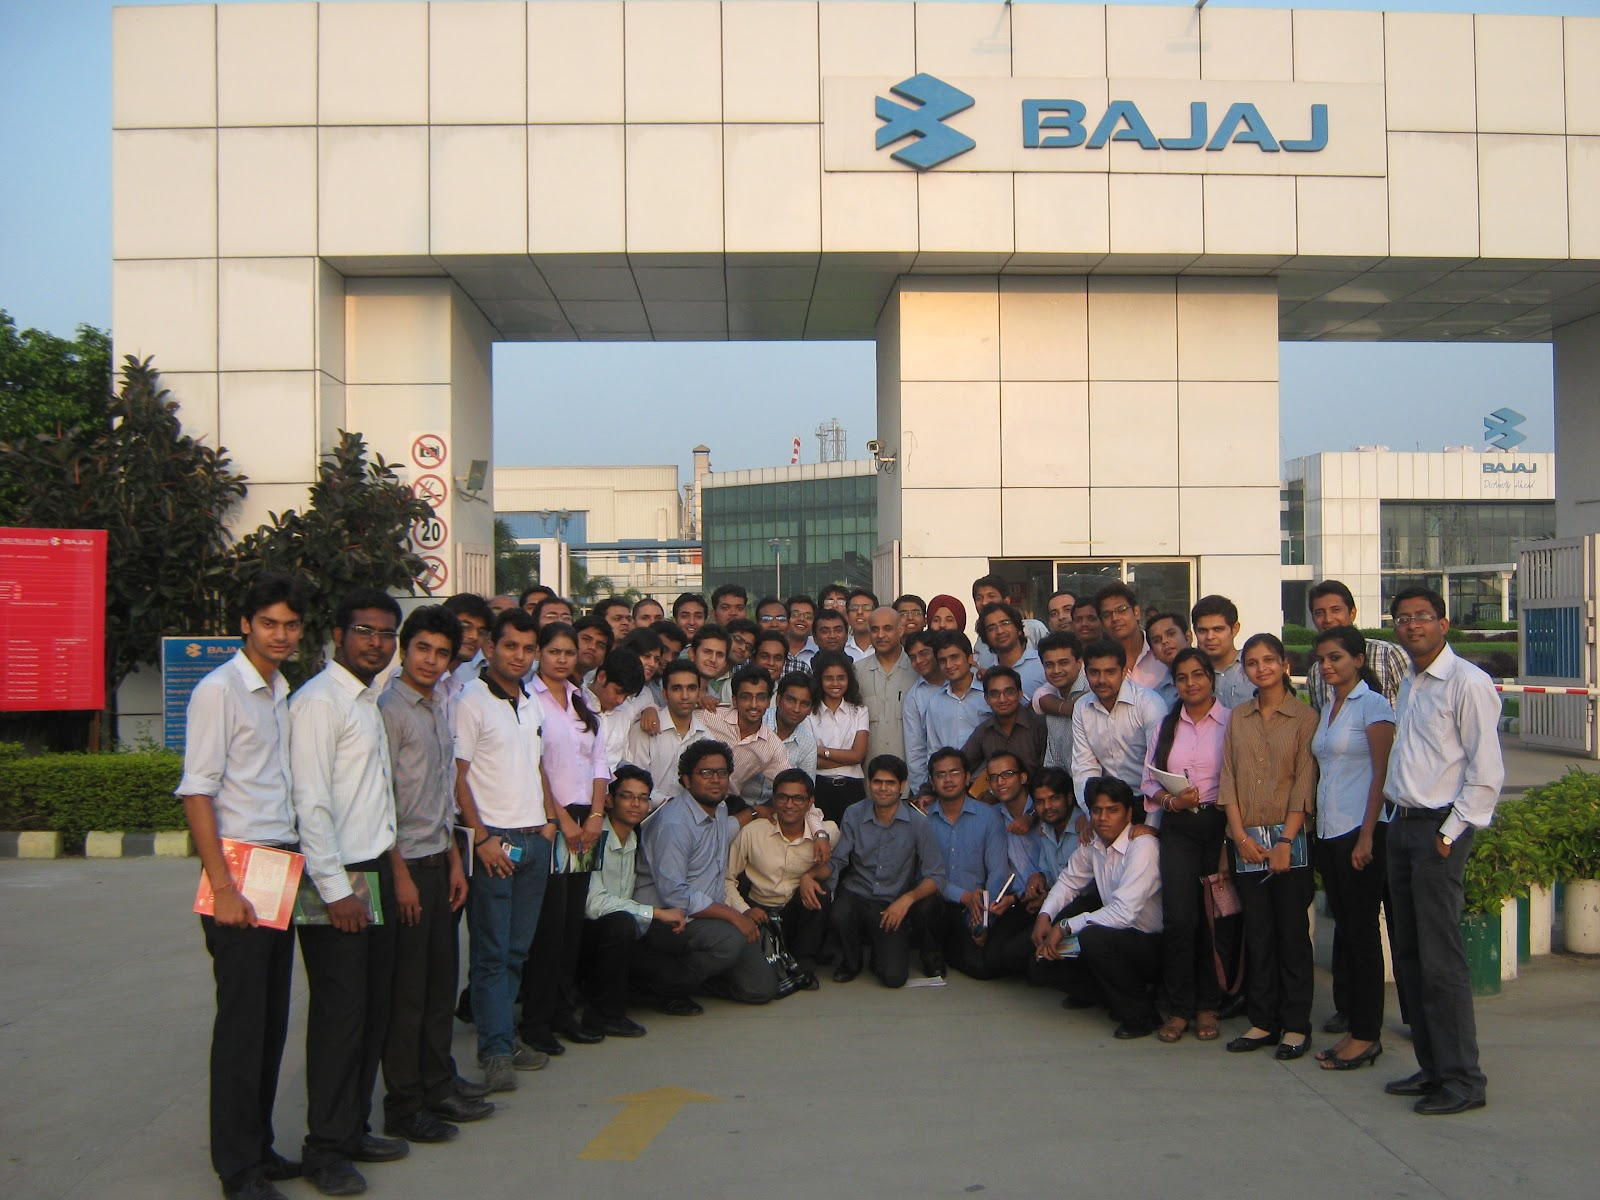 bajaj auto limited Bajaj auto limited manufactures and sells scooters, motor cycles, three-wheeler vehicles, and spare parts in india the last earnings update was 68 days ago.